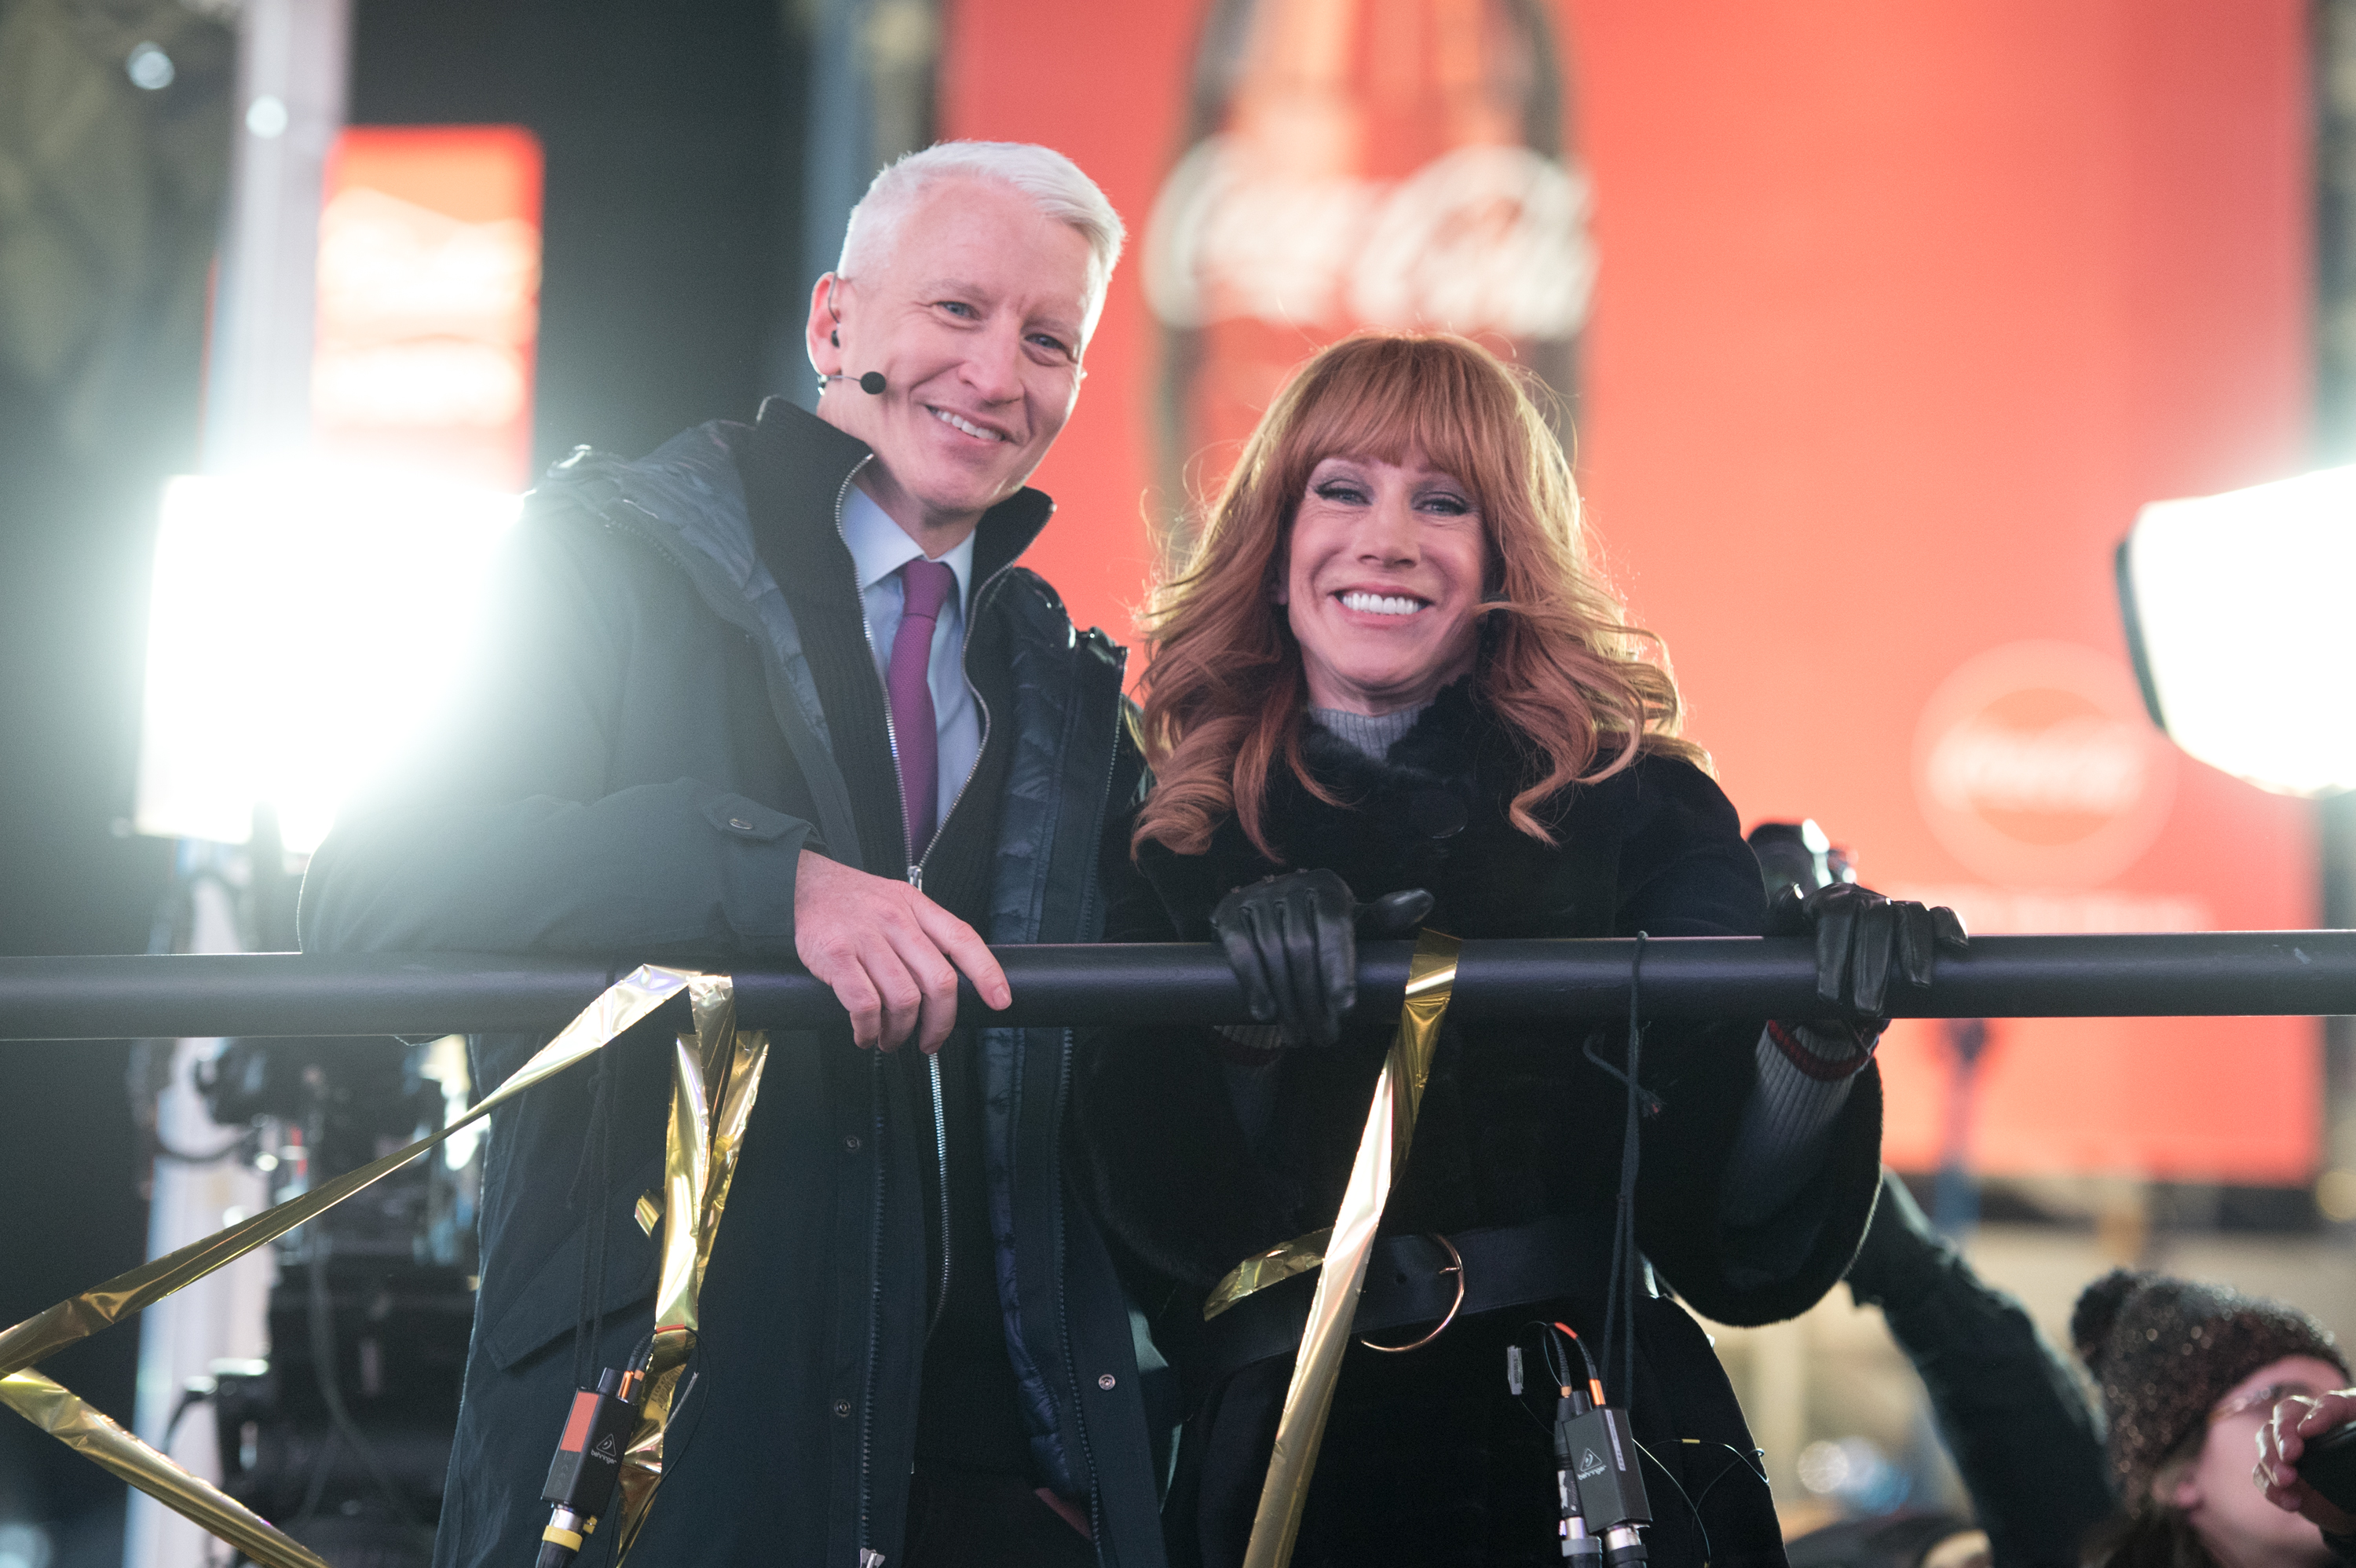 New Year's Eve Anderson Cooper and Kathy Griffin